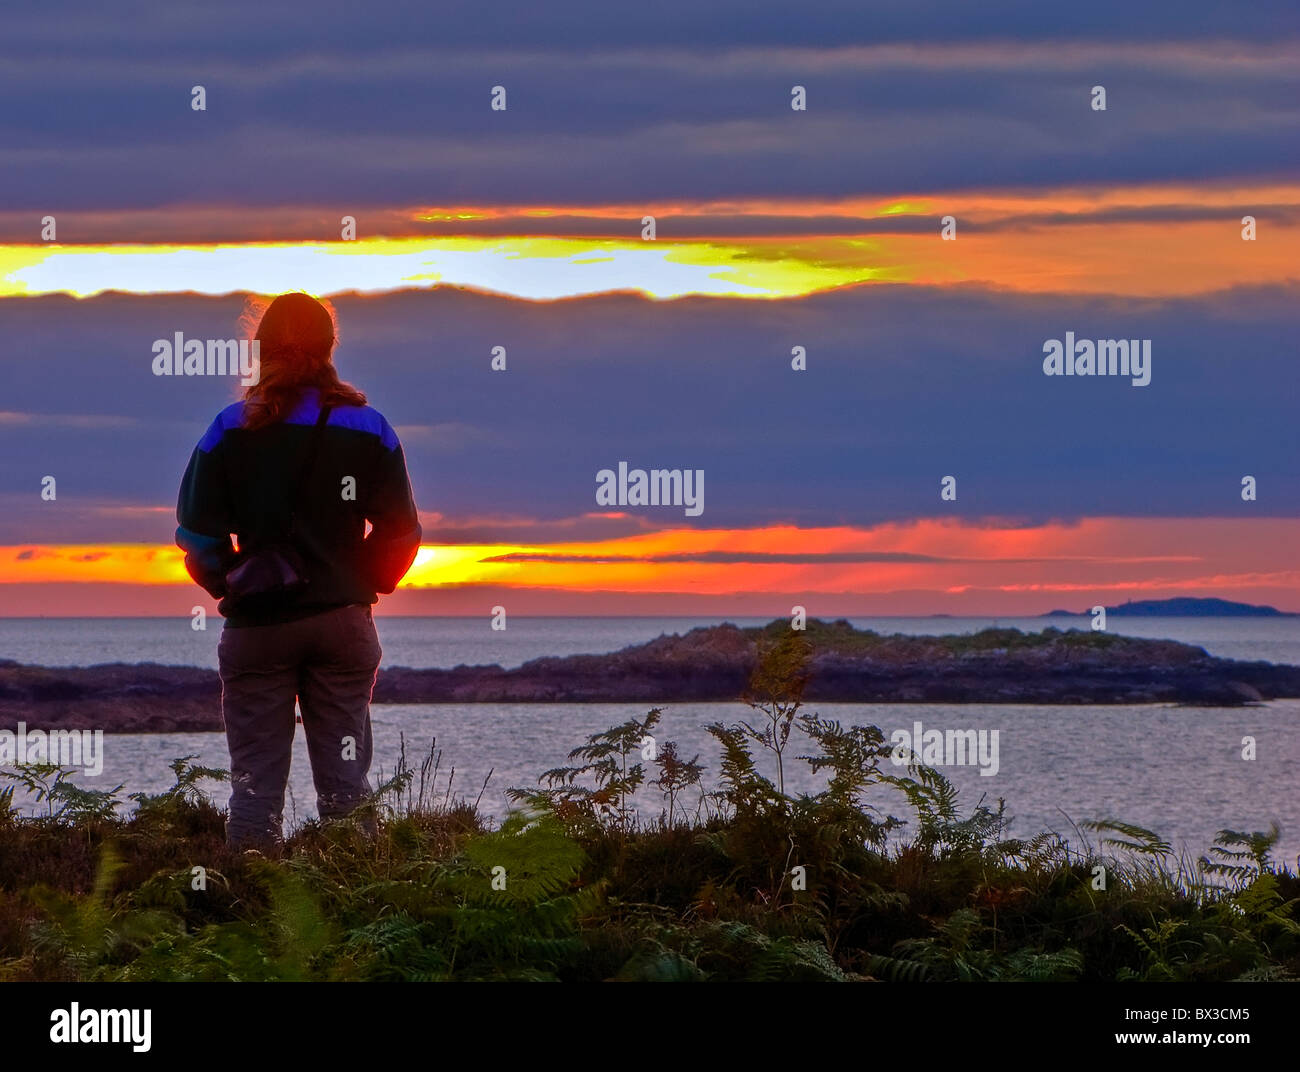 Girl teen or twenties looking towards sunrise or sunset perhaps contemplating her past, future or relationship. - Stock Image